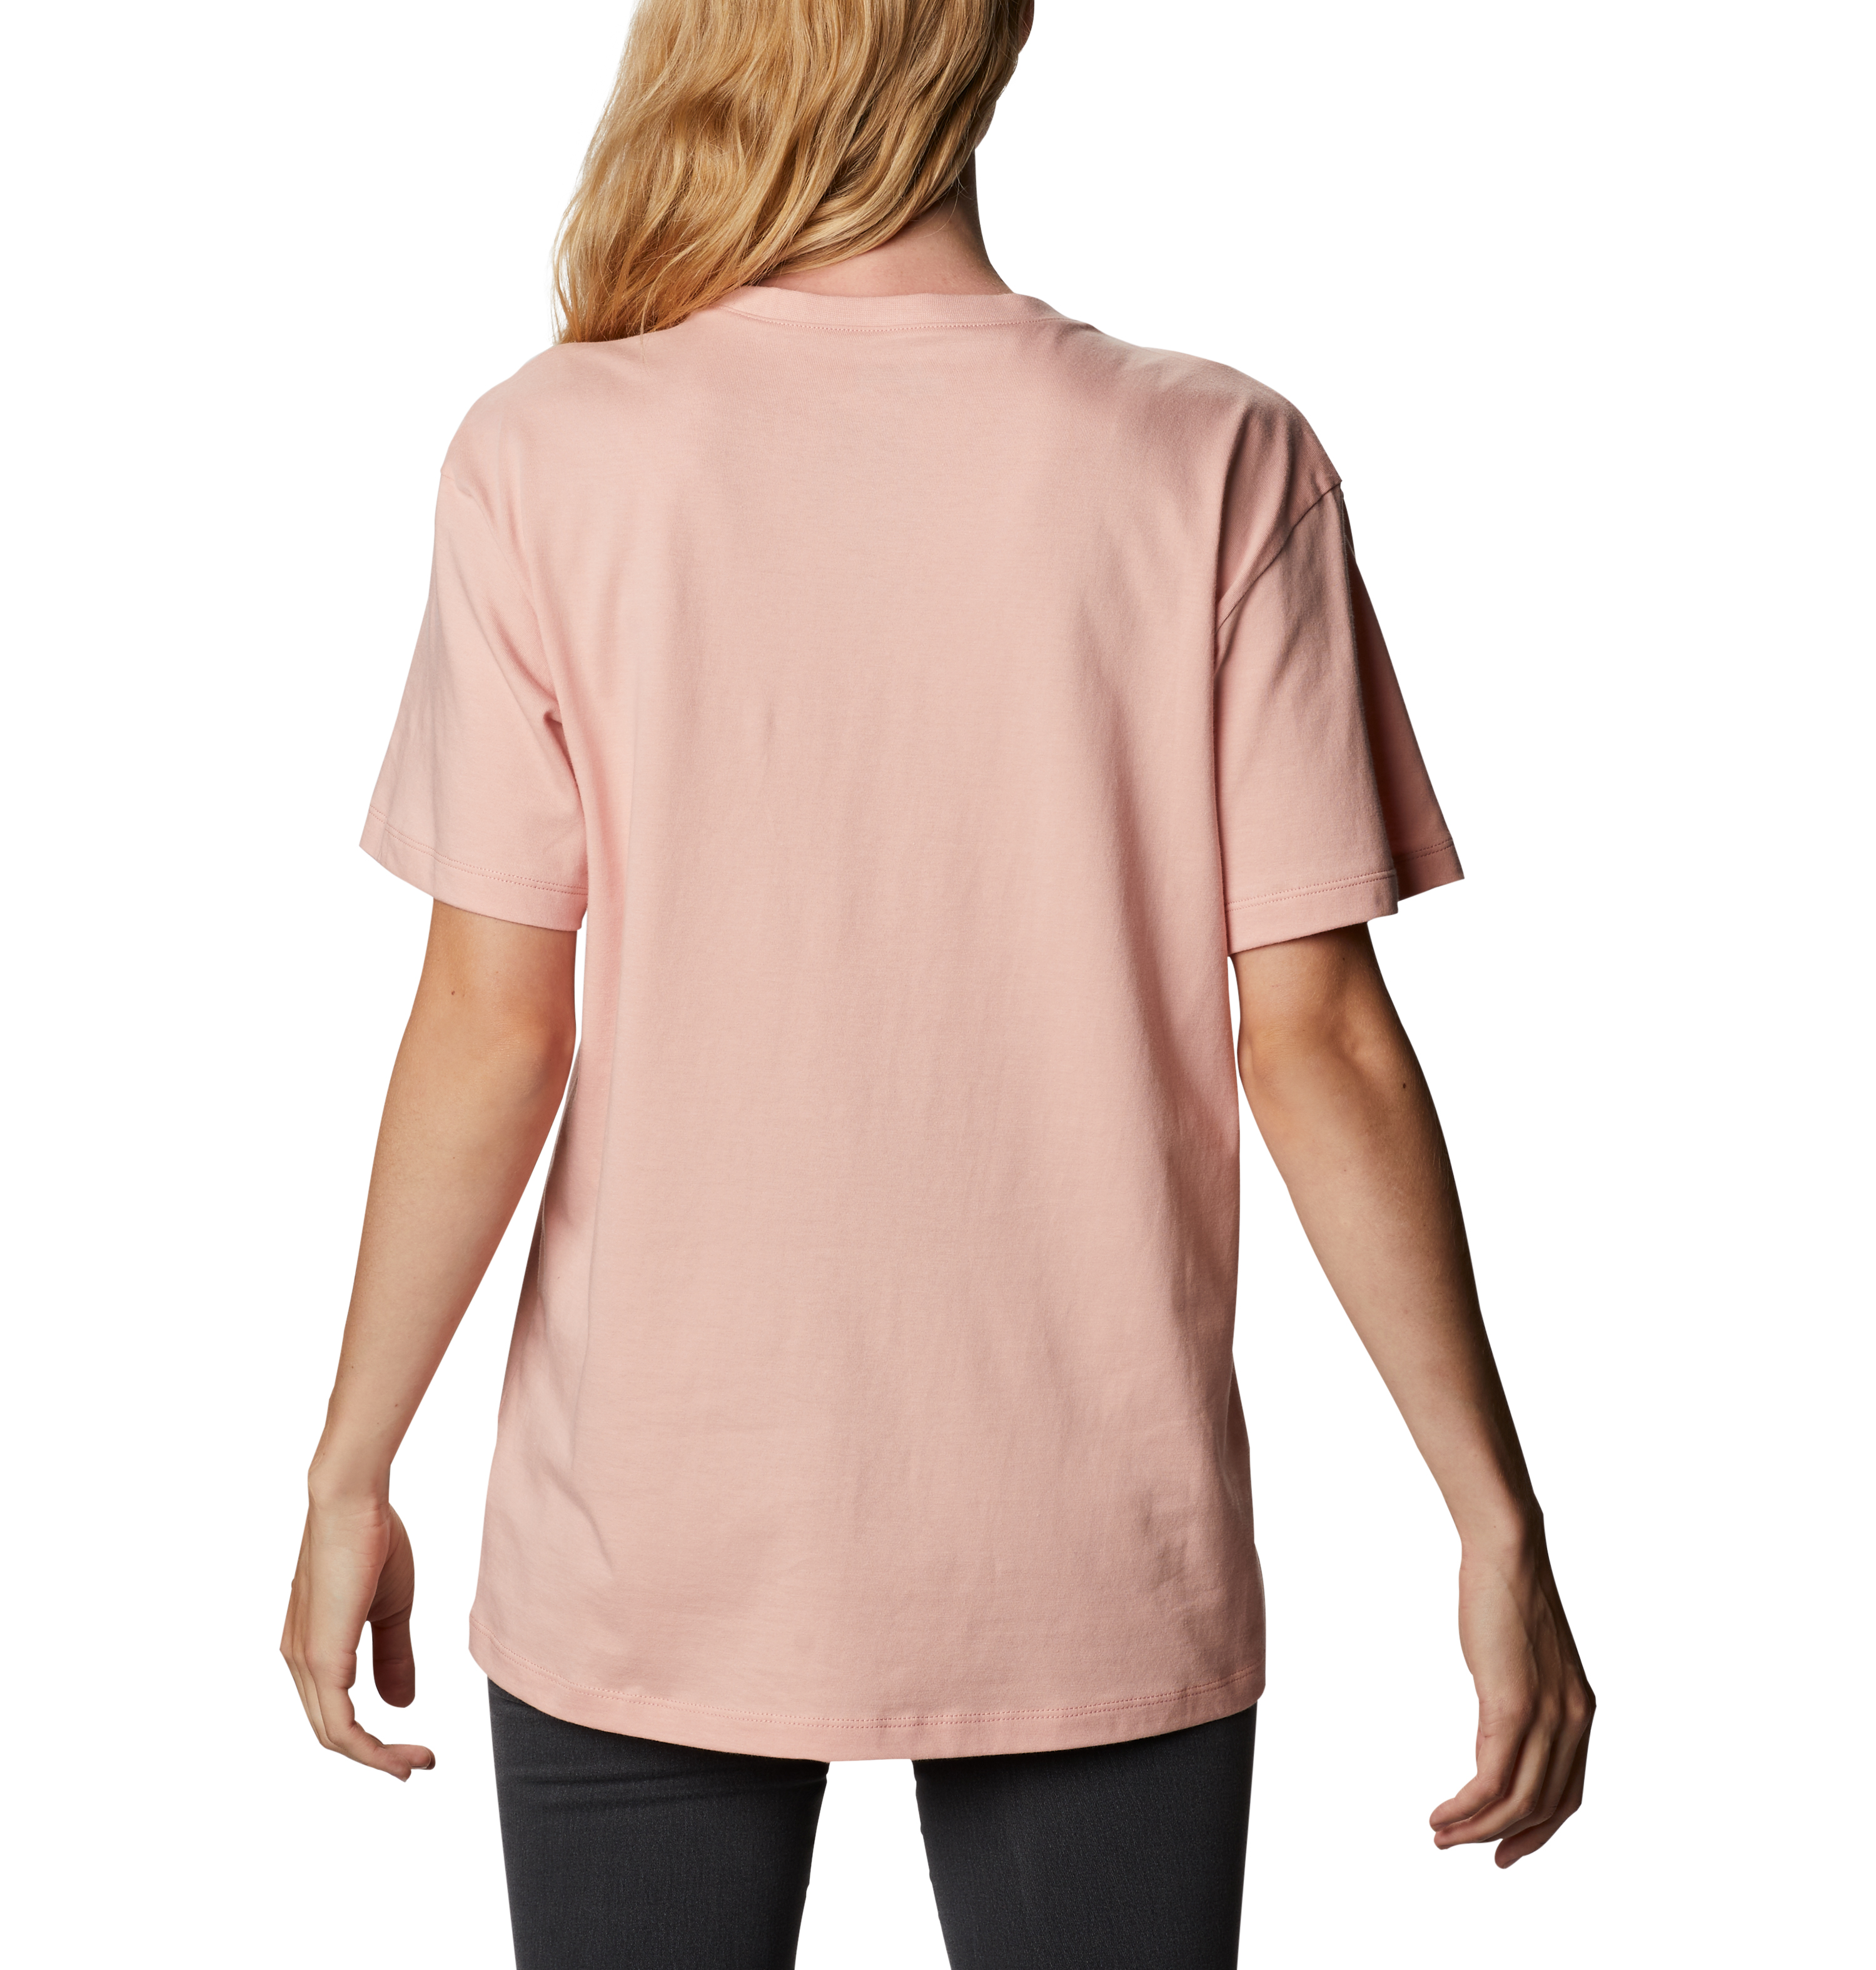 Columbia Park™ t-Shirt, faux pink, small